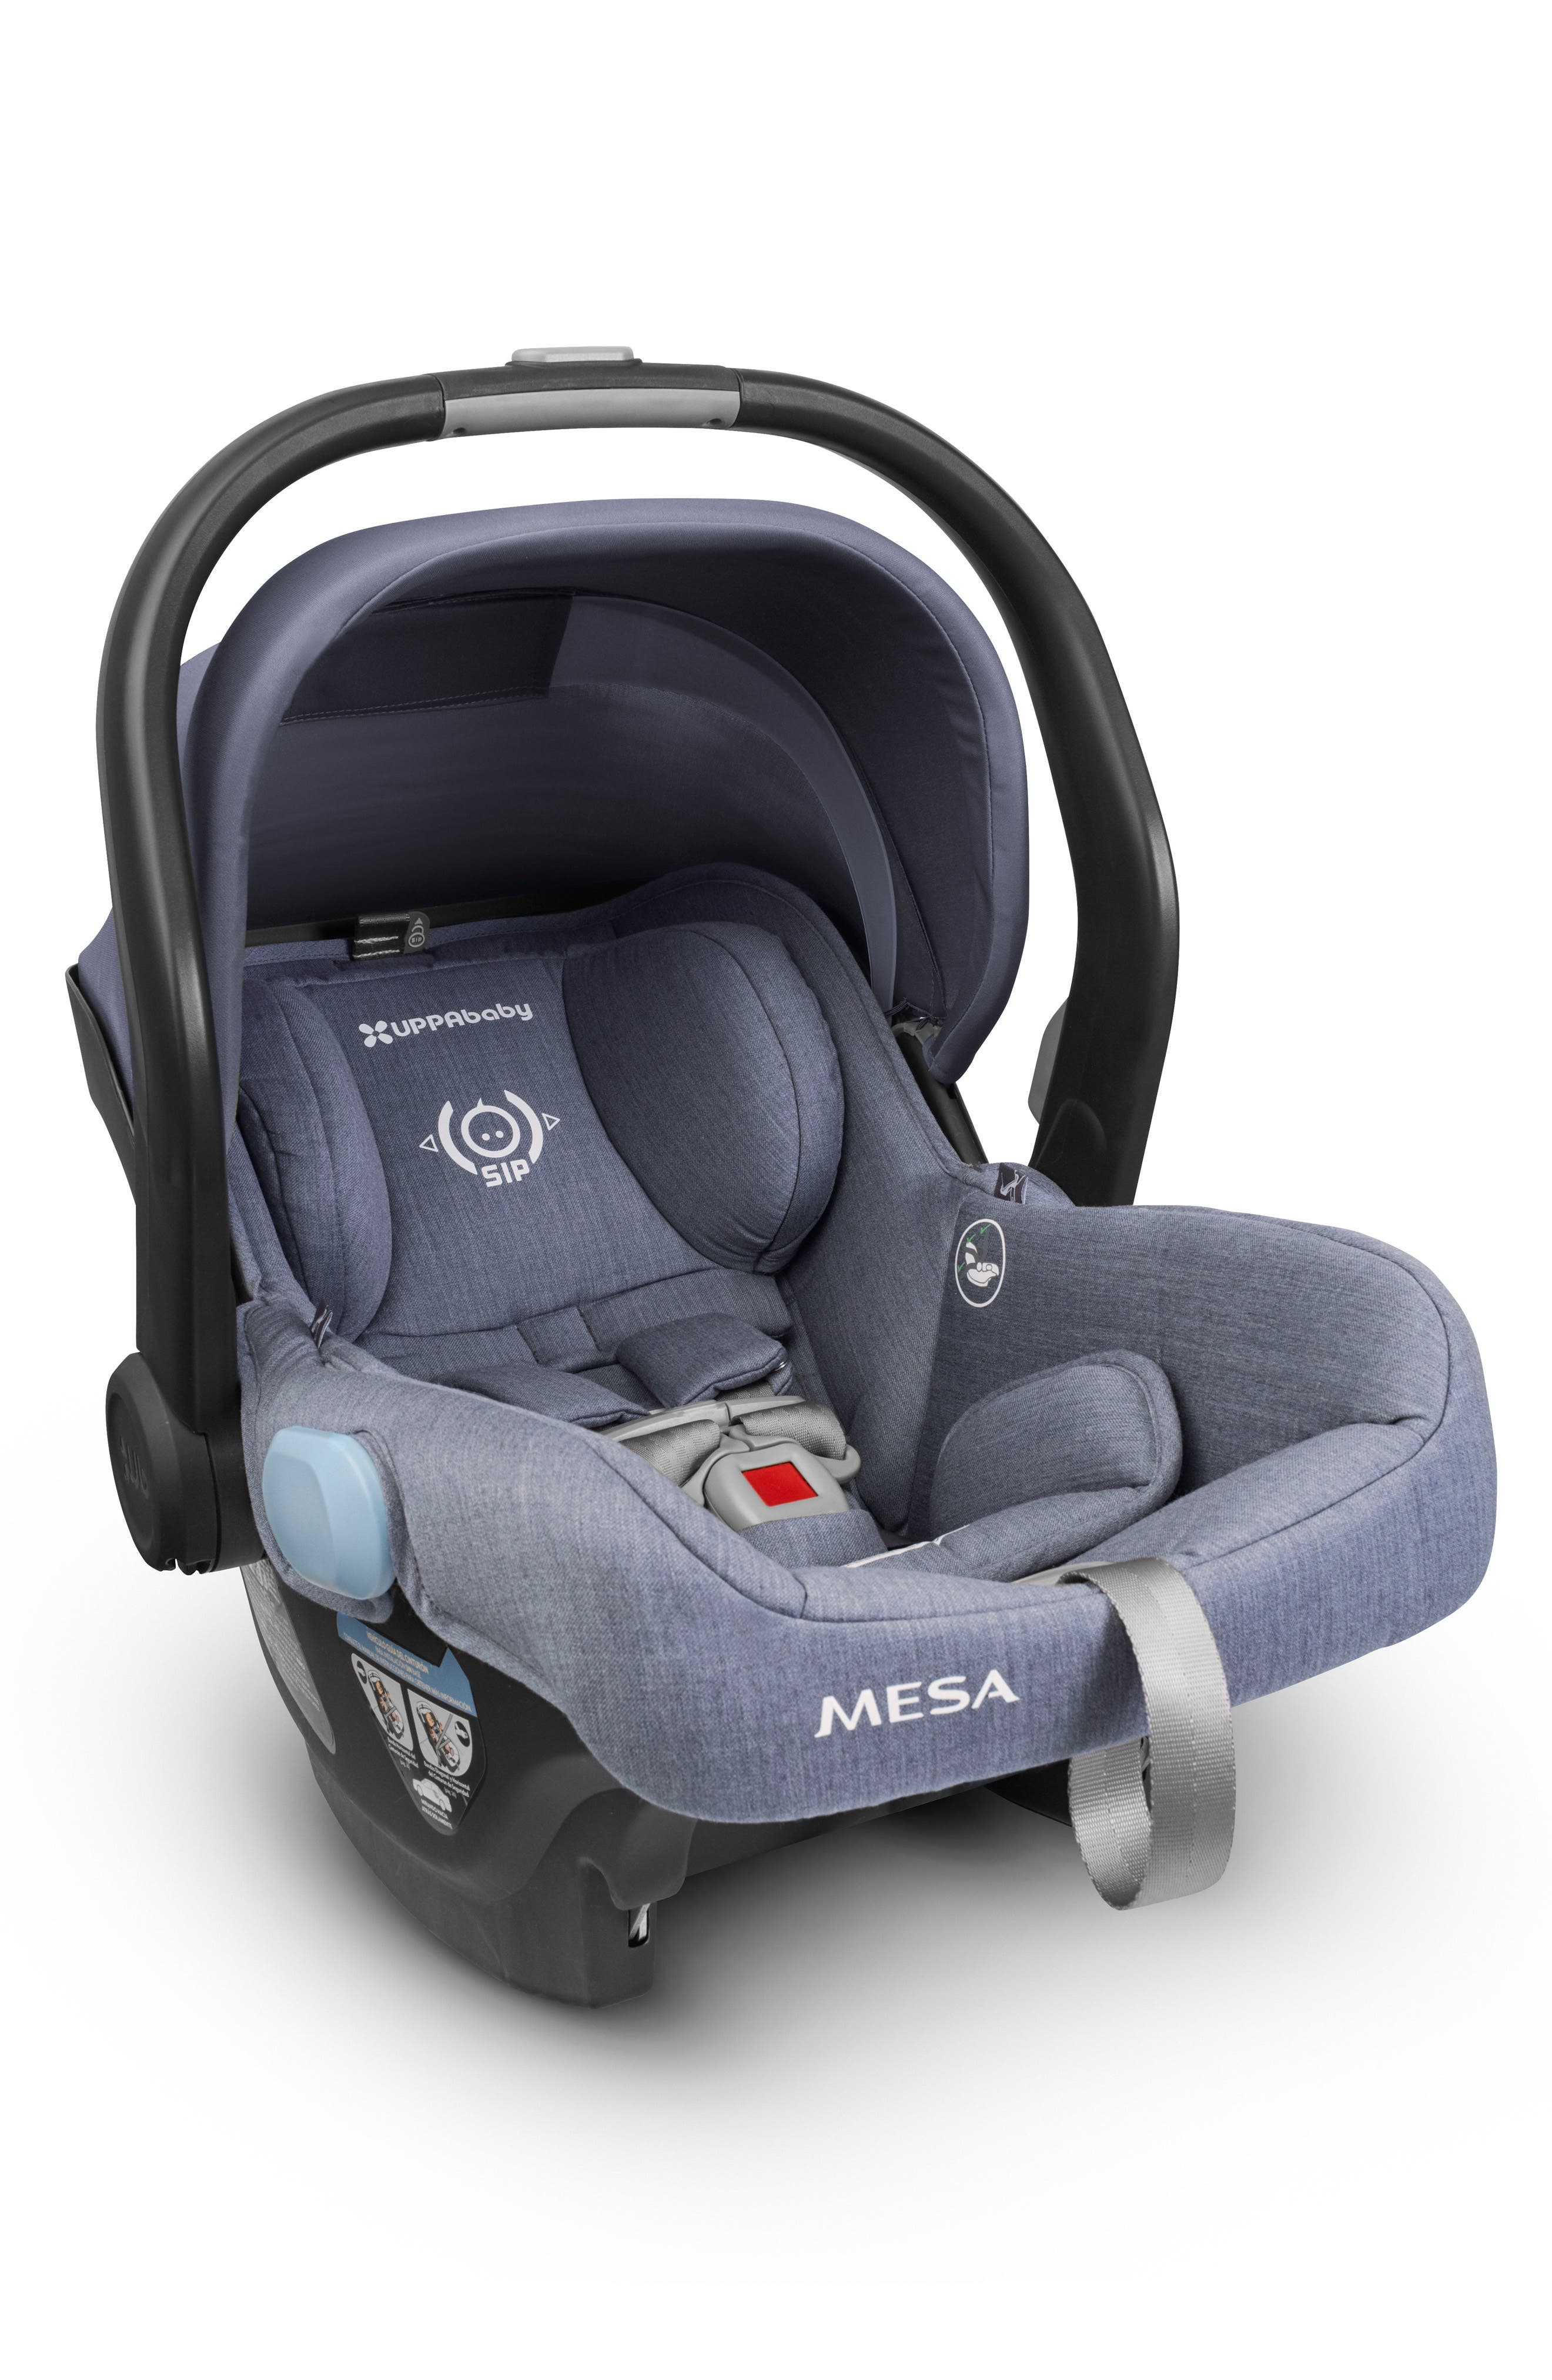 Alternate Image 1 Selected - UPPAbaby MESA - Henry Special Edition Car Seat